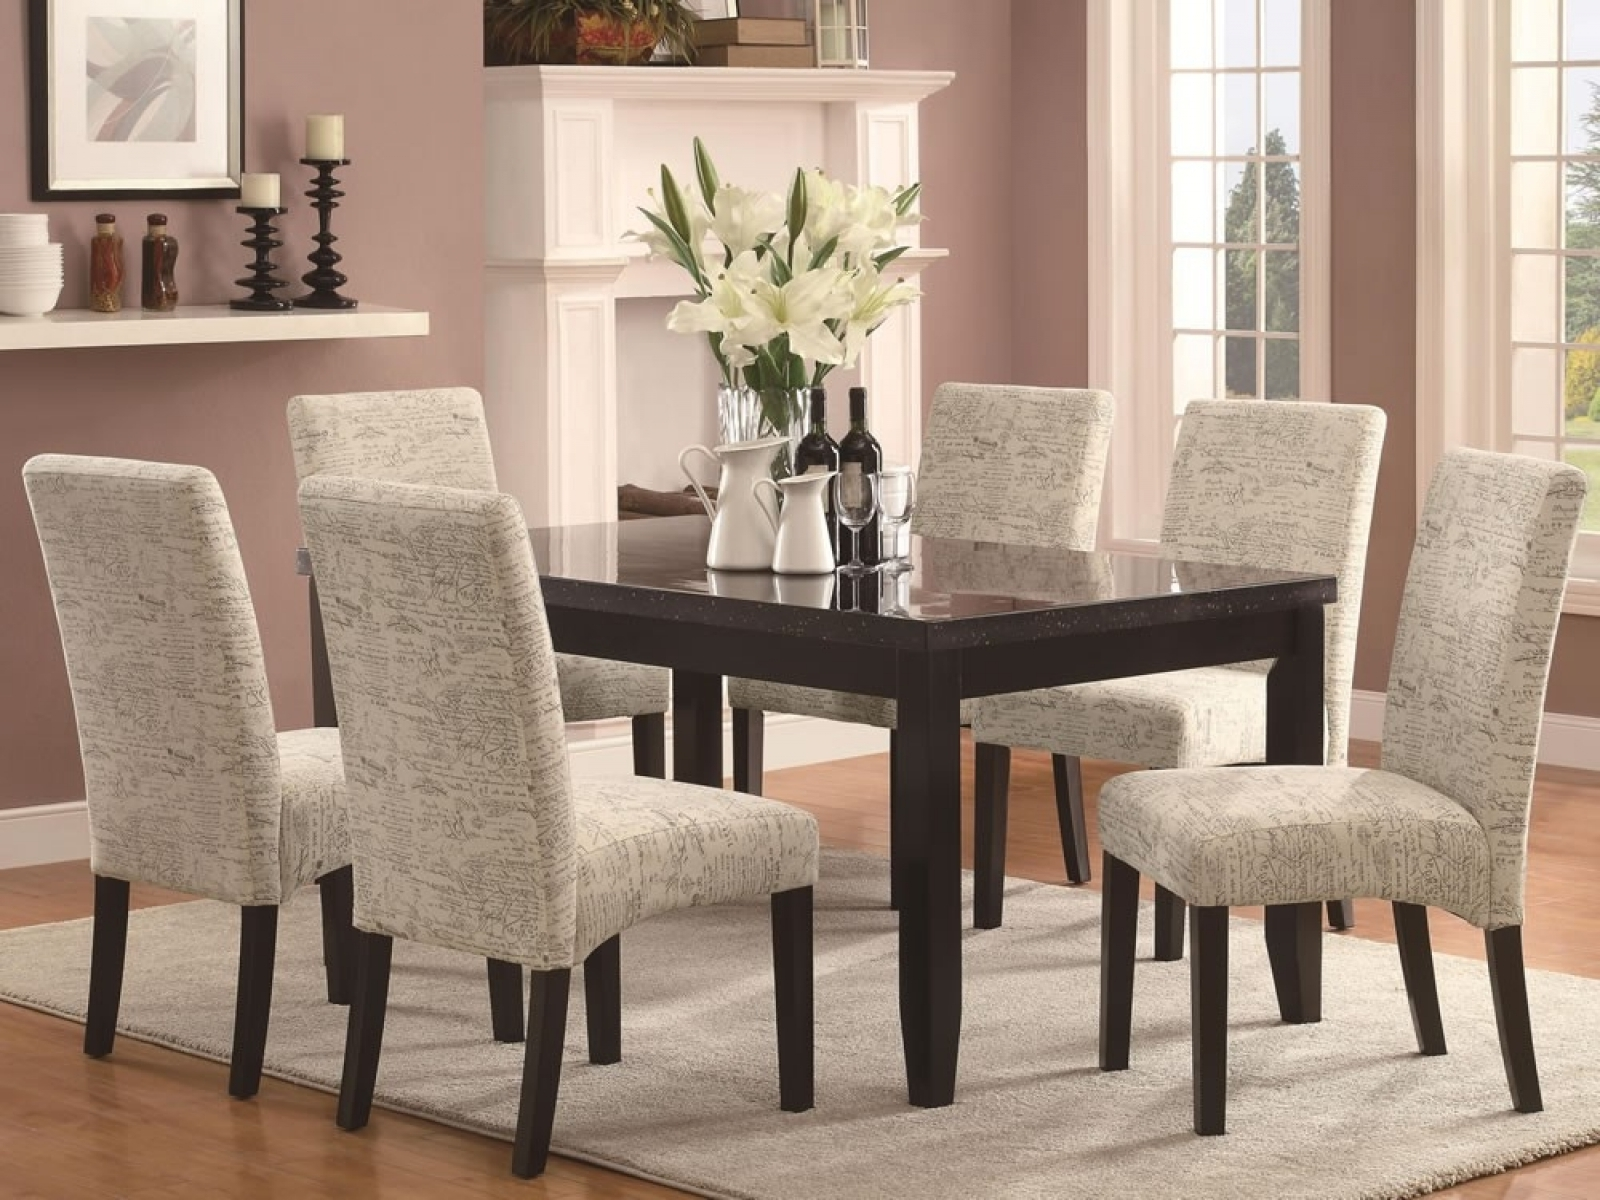 Preferred Fabric Dining Room Chairs With Regard To Fancy Dining Room With Upholstered Dining Chair Also Wood Dining (View 4 of 25)